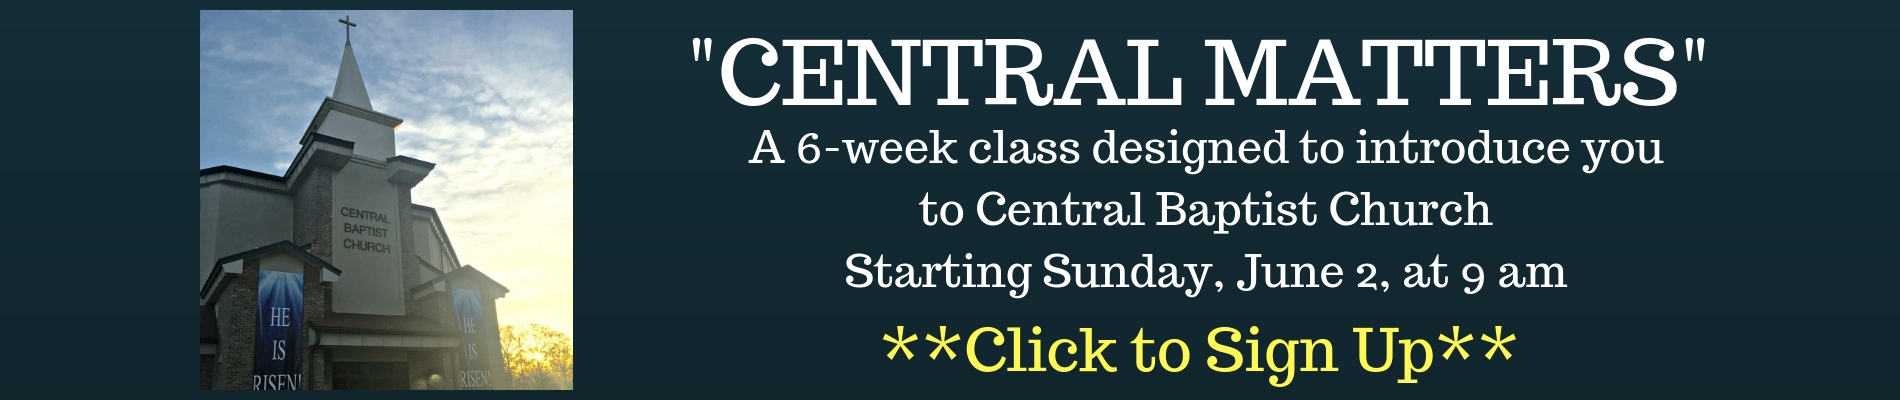 CENTRAL MATTERS